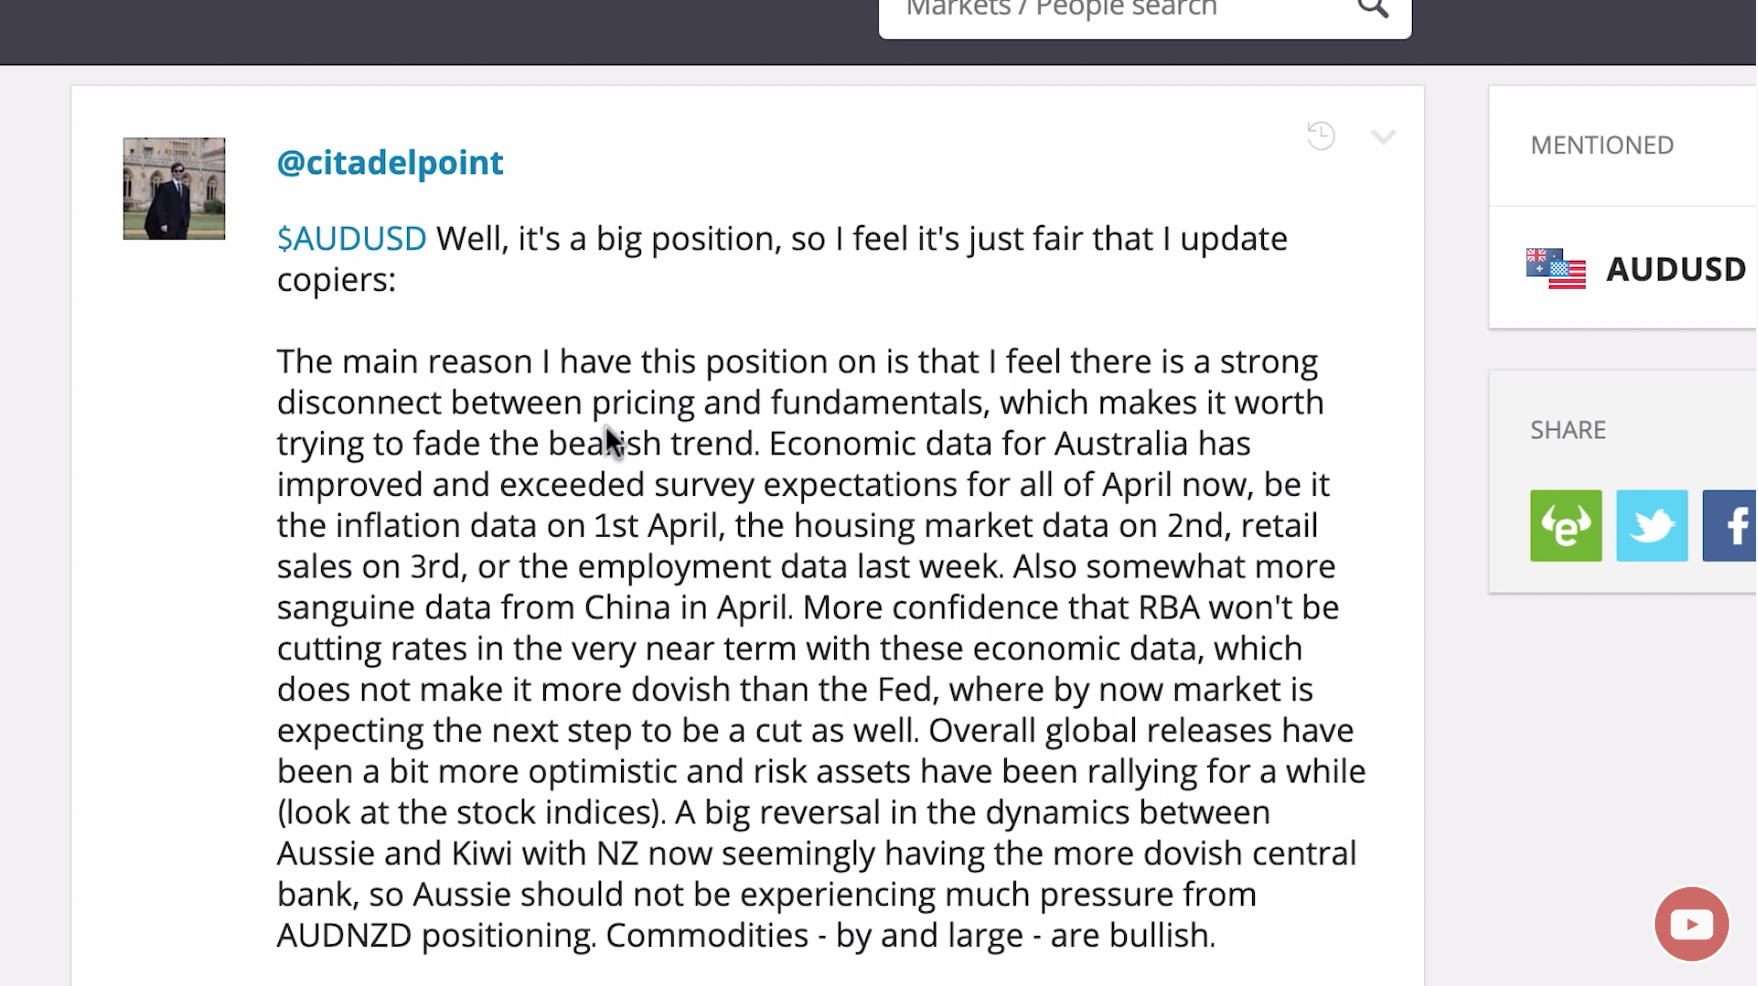 A trader's post about the AUD/USD trade in question